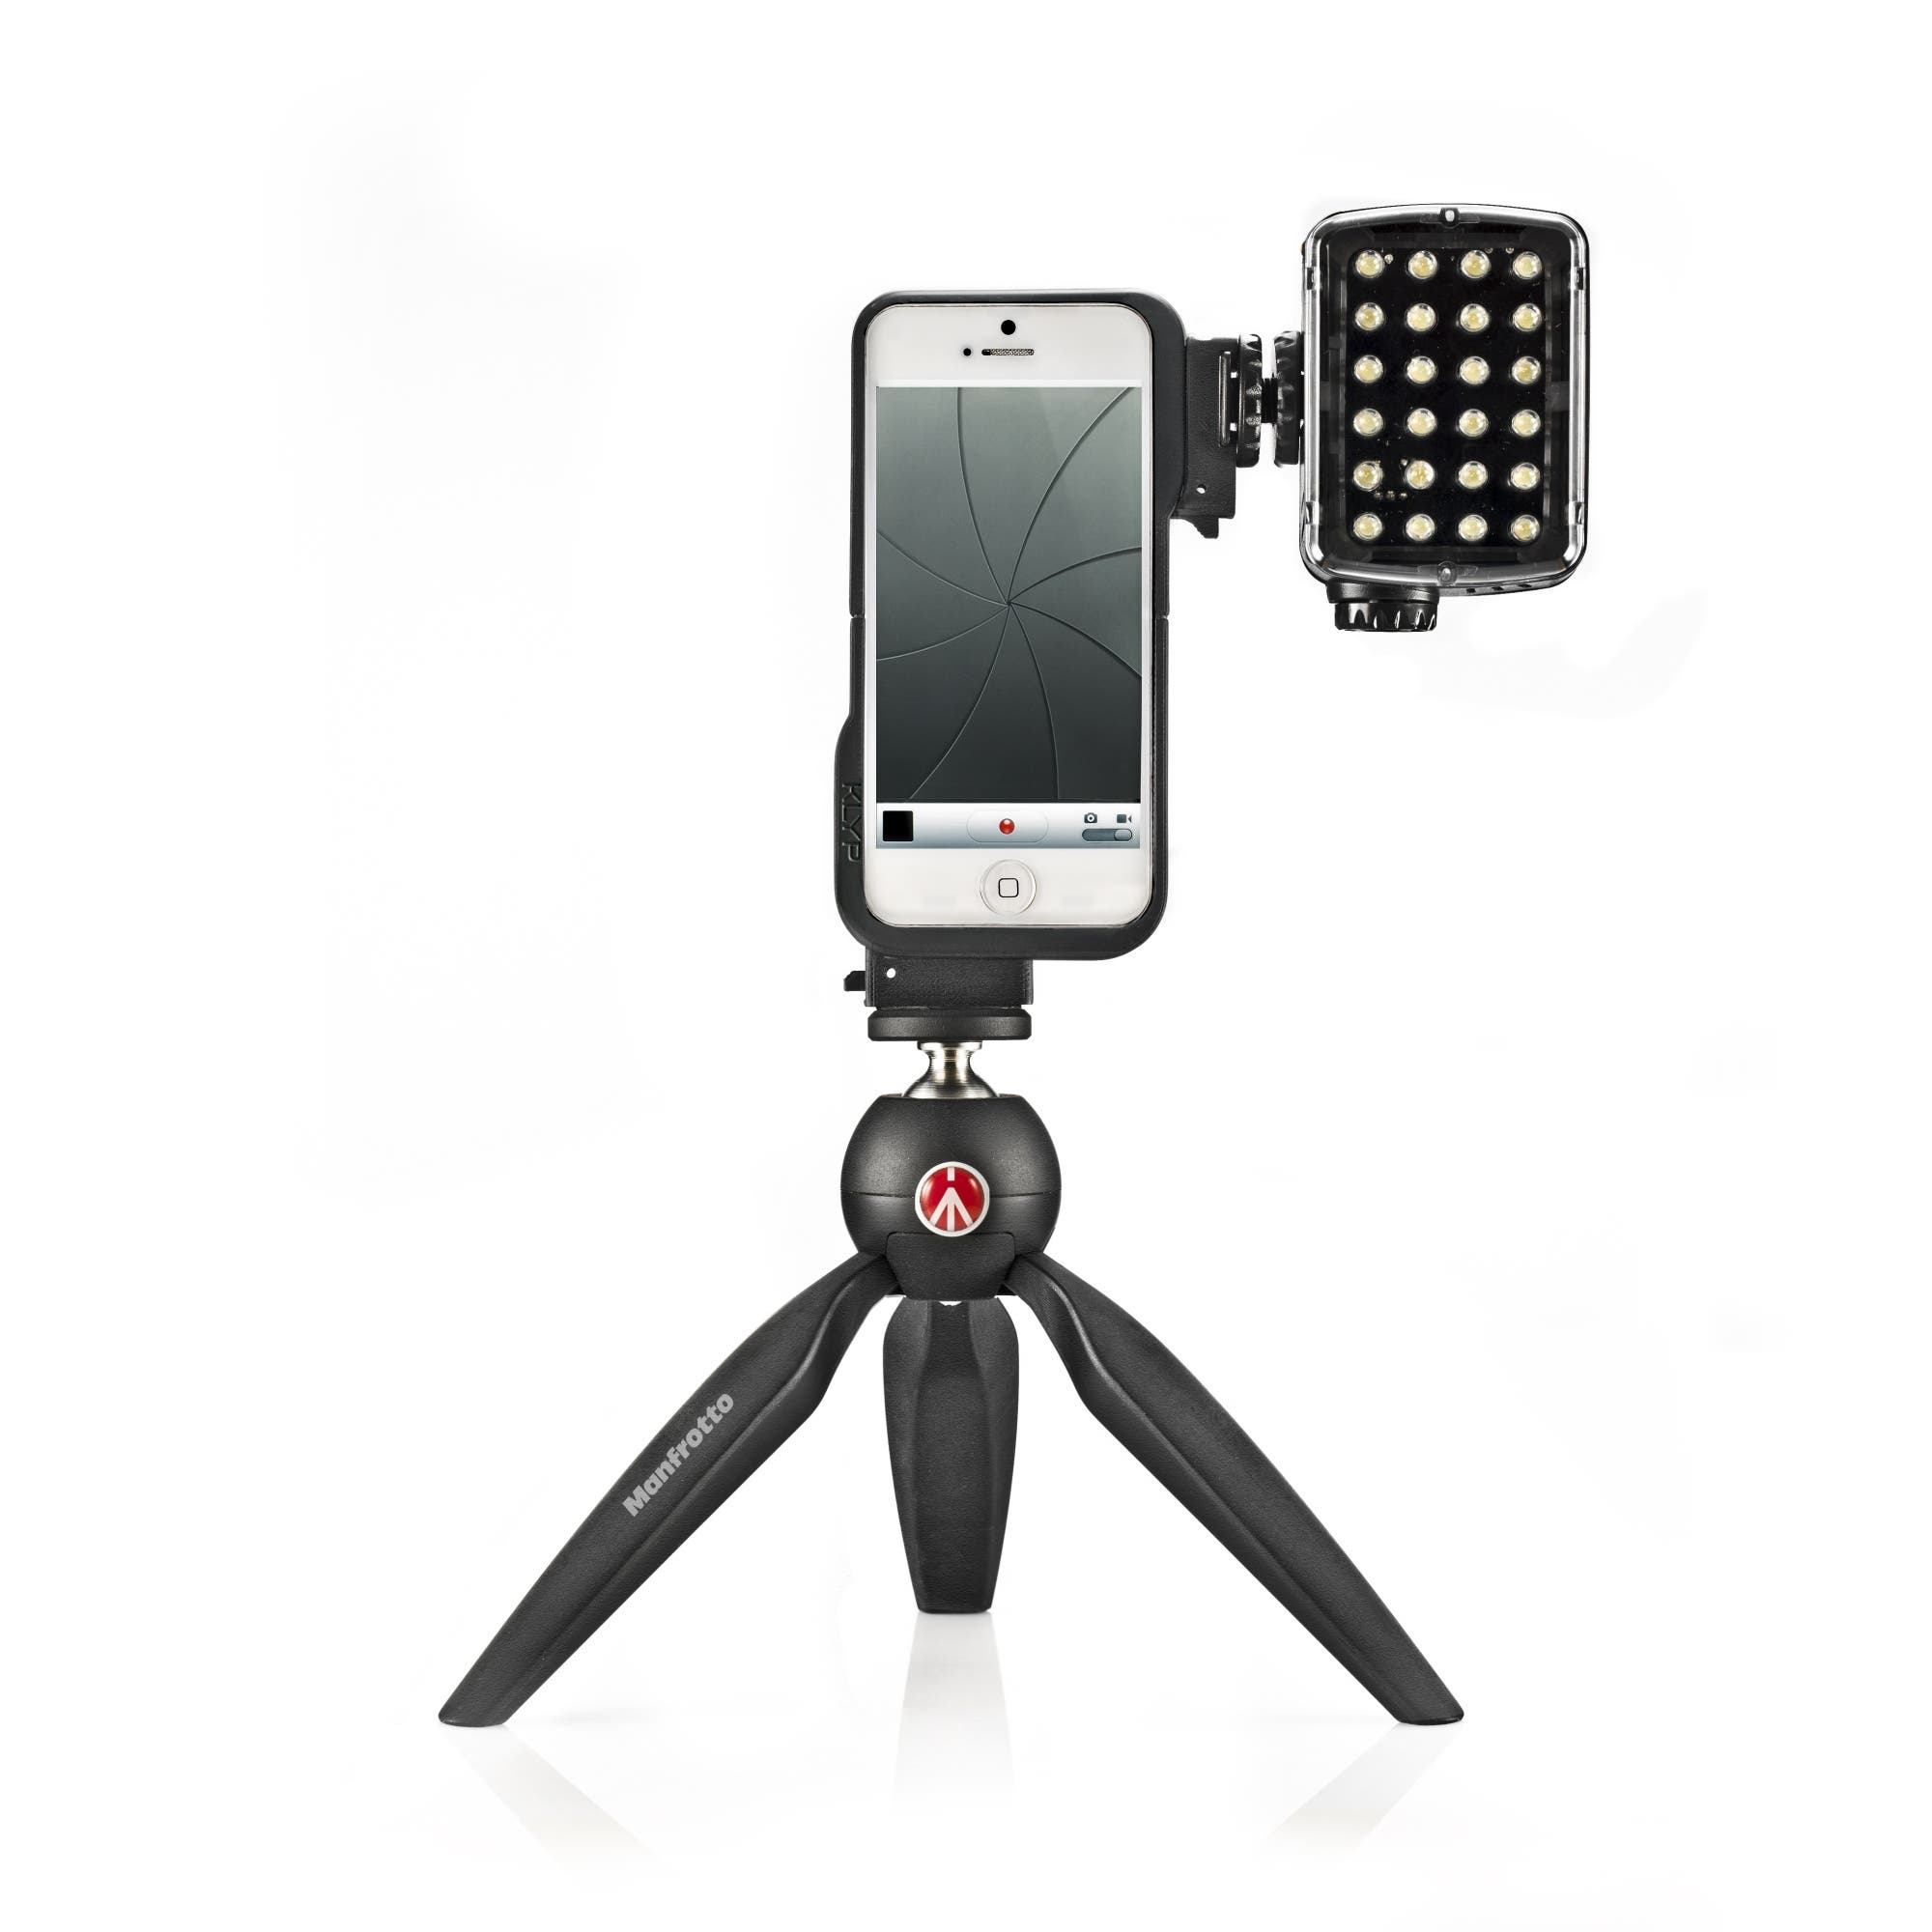 manfrotto announces klyp case and klypapp for iphone 4 4s